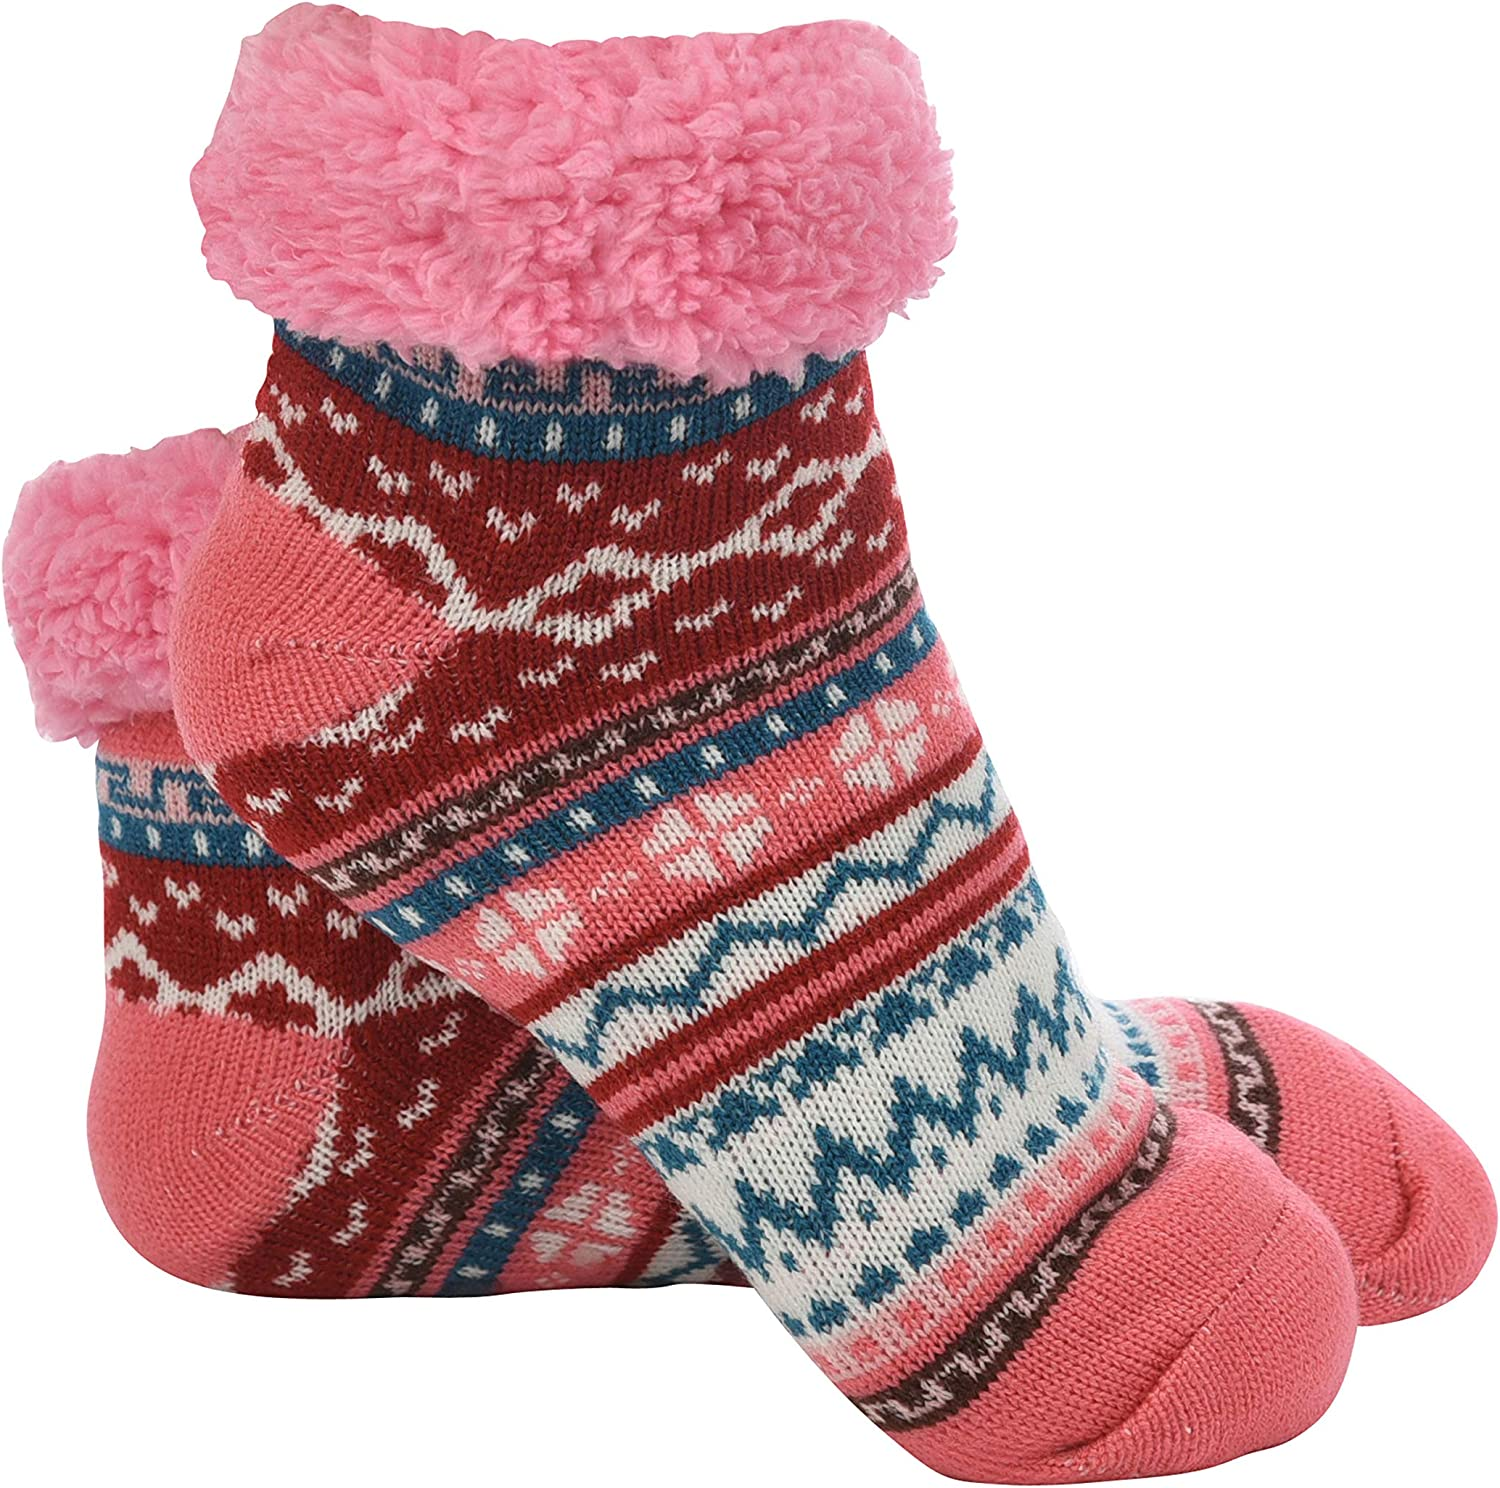 Snoozies Bright Footies Sherpa Lined Womens Socks - Fuzzy Socks for Women